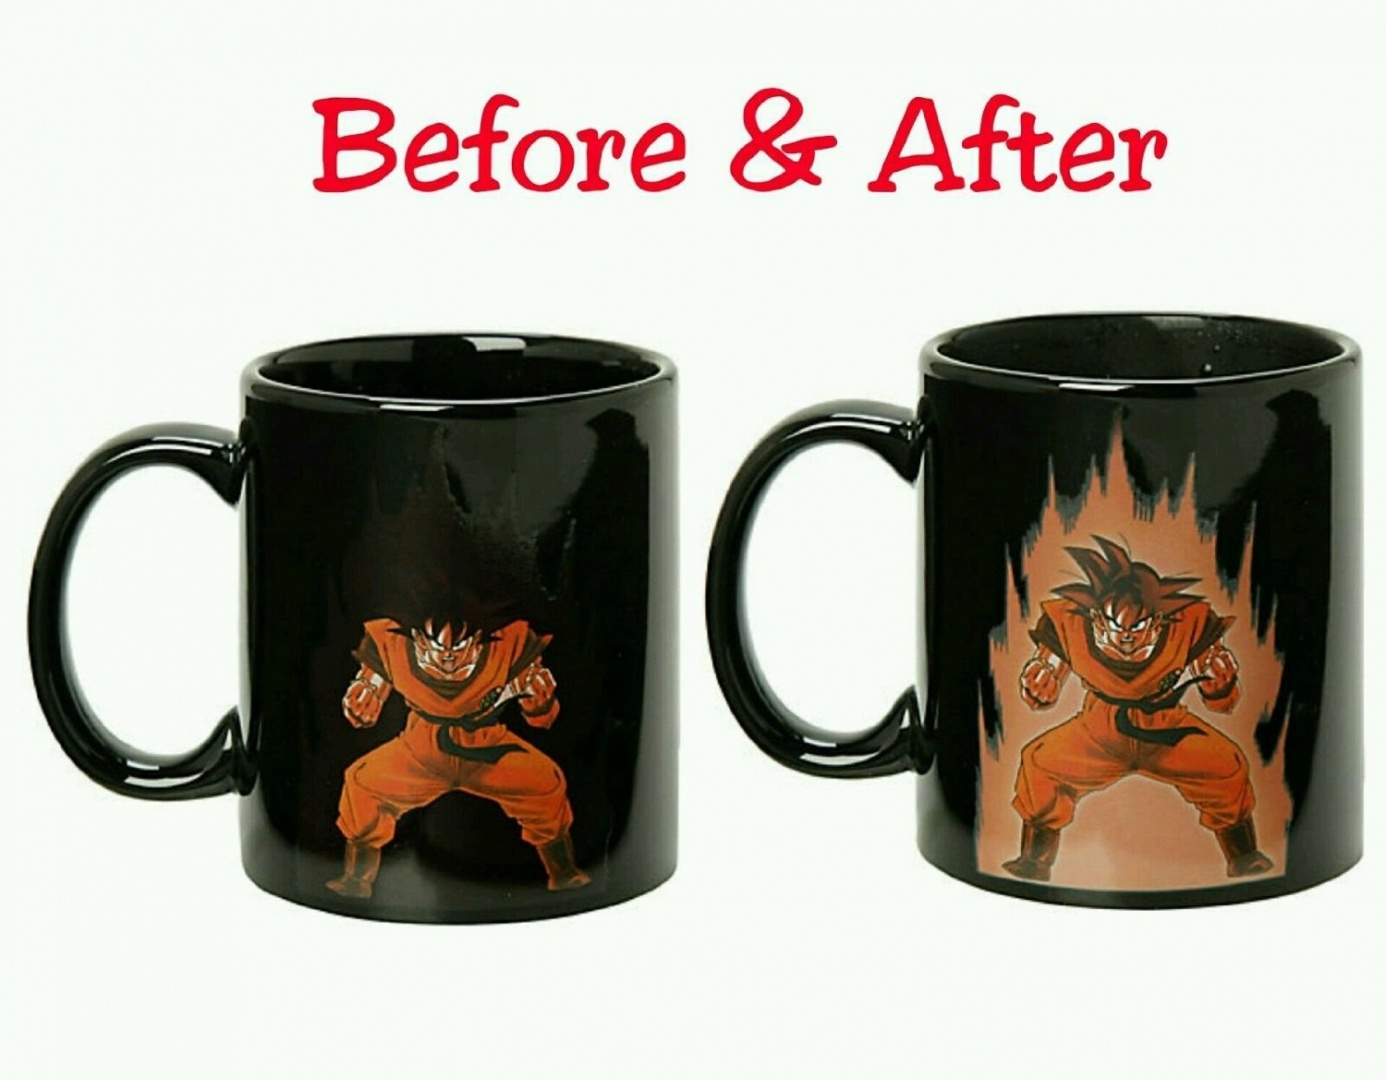 Awesome Share This Product Dragon Ball Z Heat Reactive Colour Changing Coffee Mug By Blu Welsh Dragon Coffee Mugs Dragon Ball Z Coffee Mugs furniture Dragon Coffee Mugs